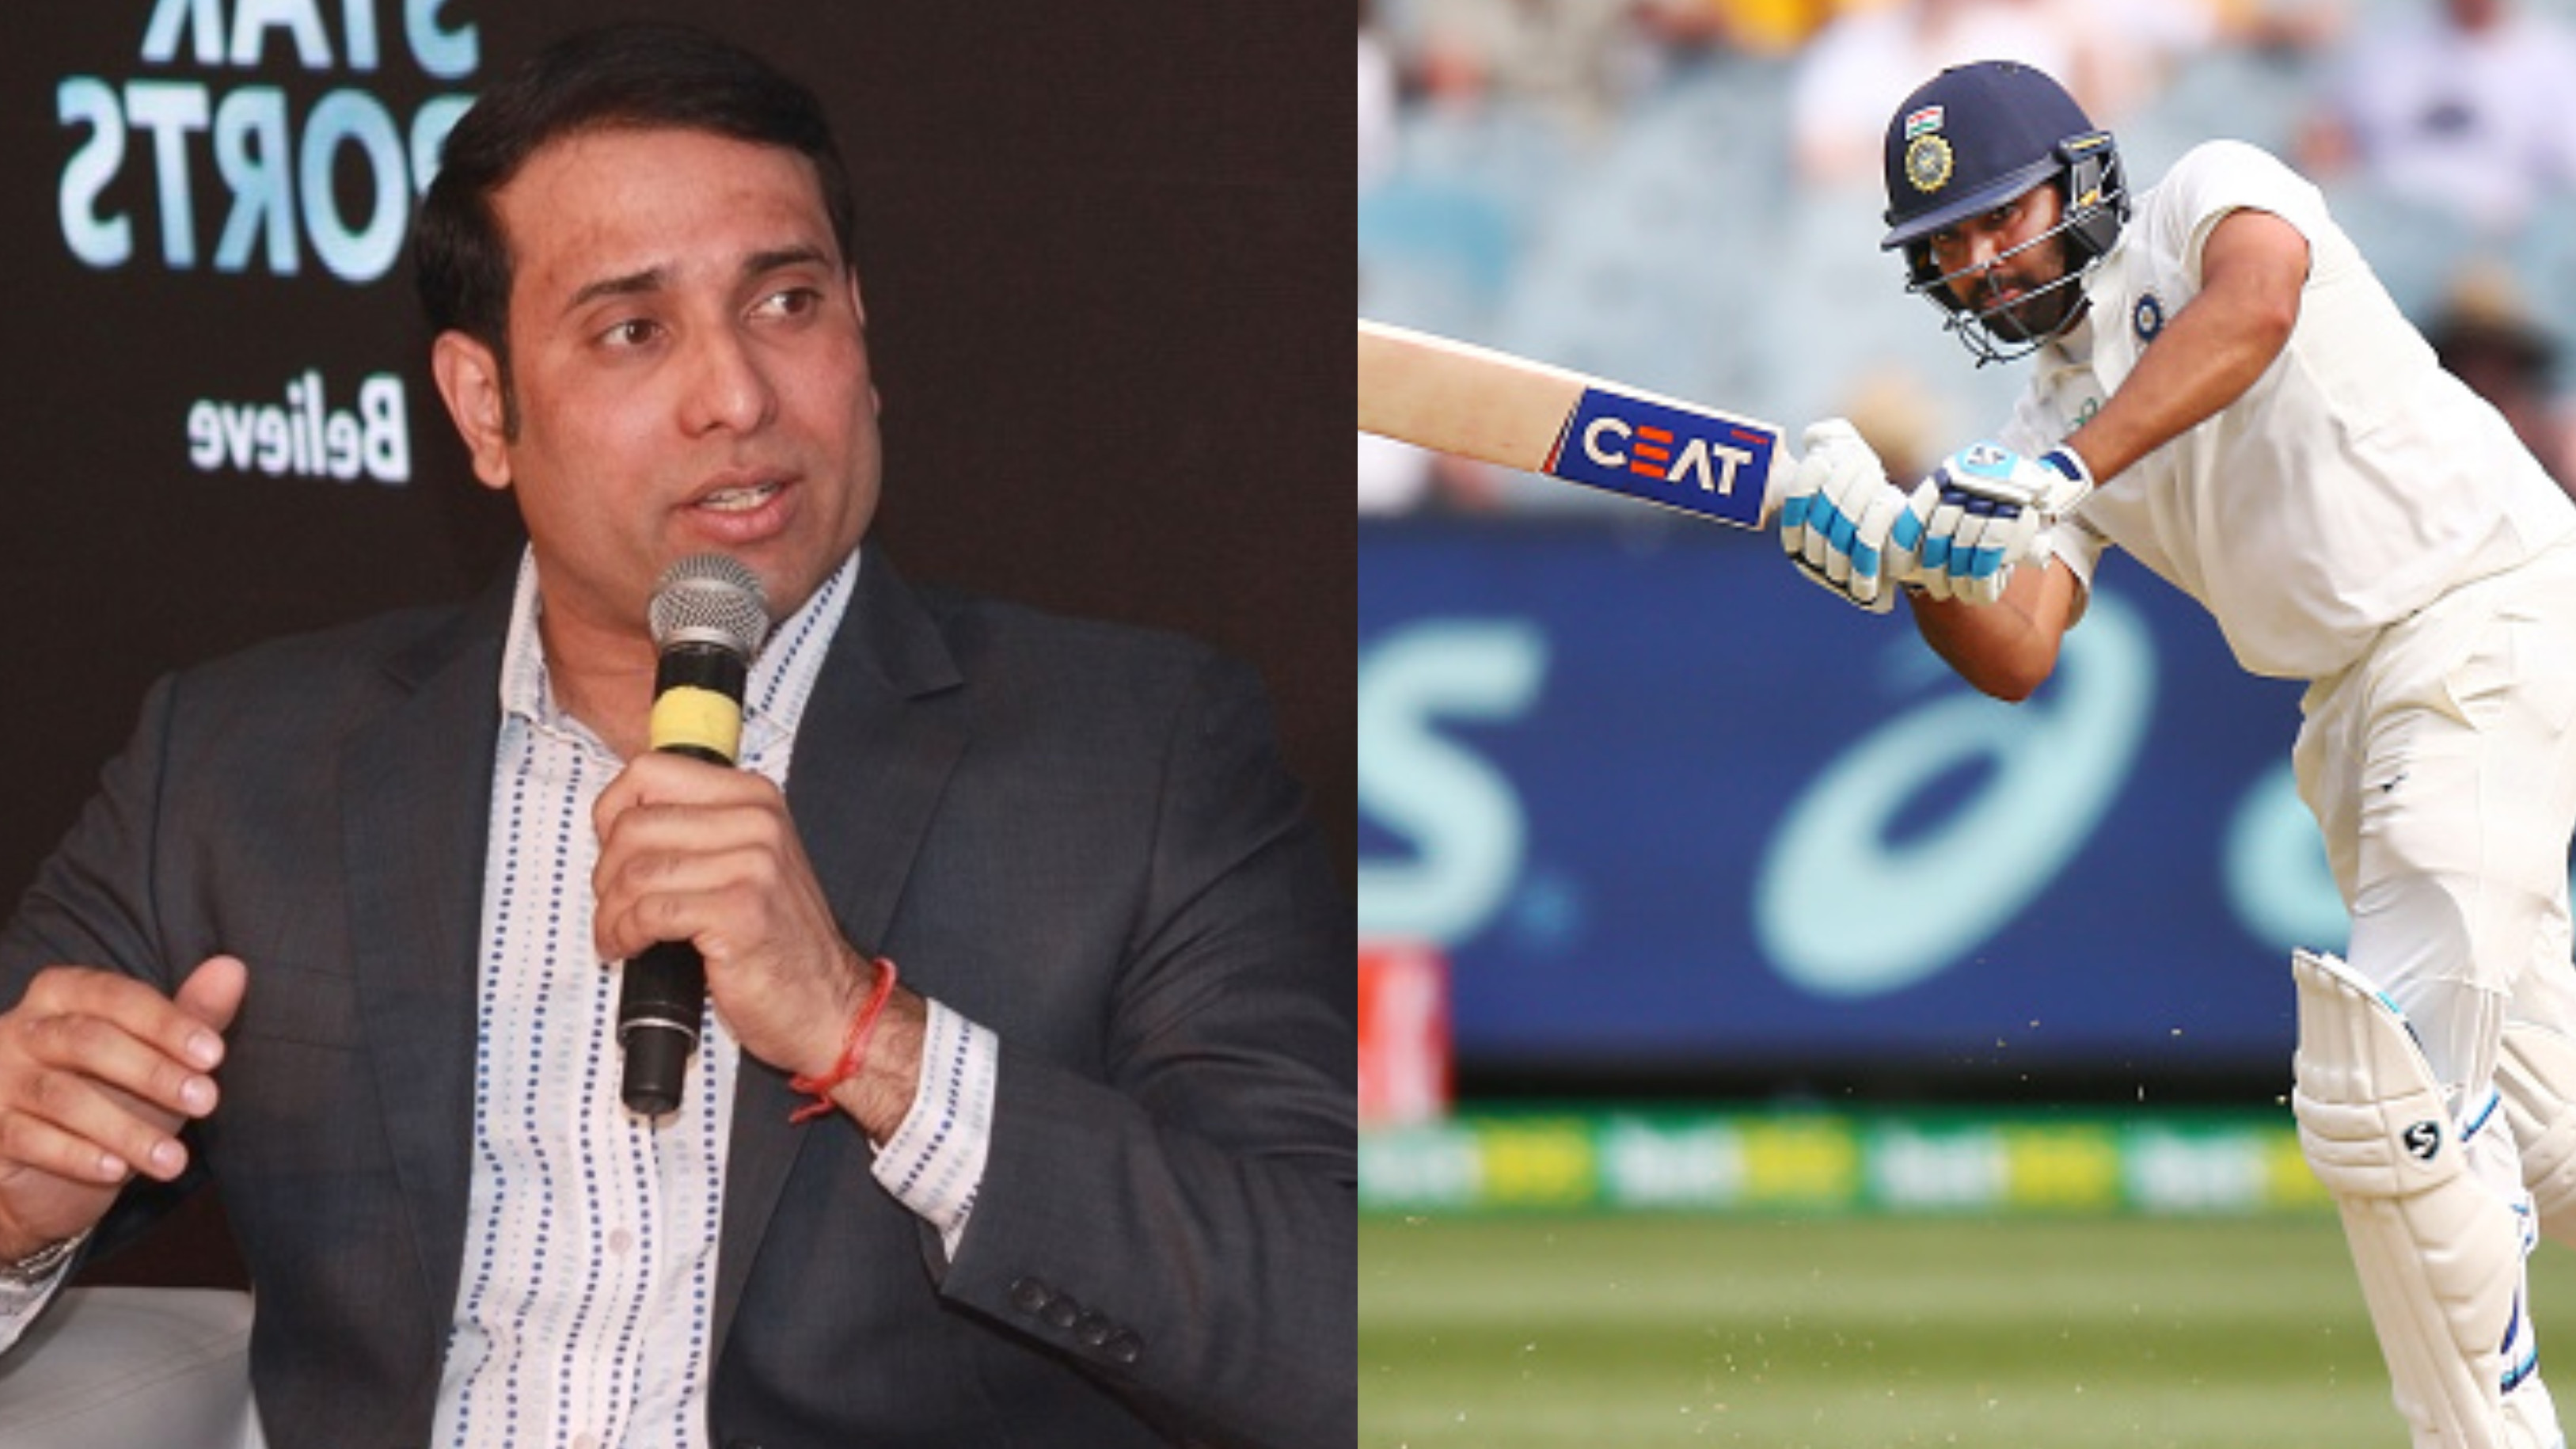 AUS v IND 2018-19: VVS Laxman feels Rohit Sharma got better after Siddle dropped his catch